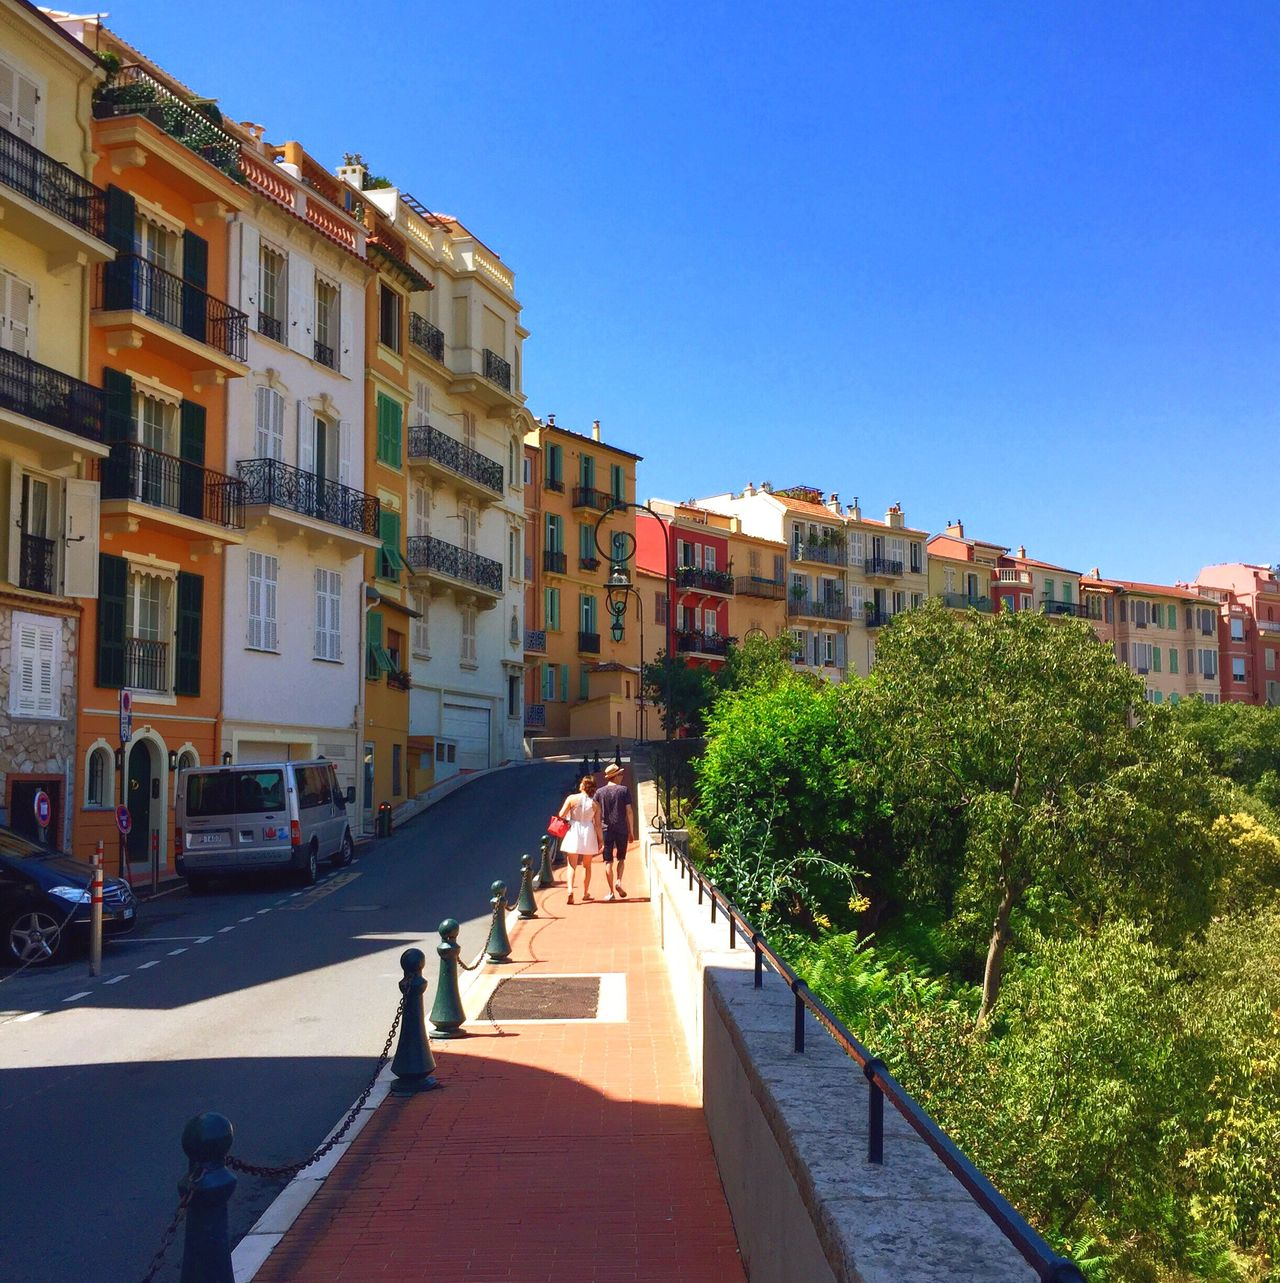 Building Exterior Architecture Built Structure Blue Clear Sky Sunlight Outdoors Real People Tree Sky City Day Nature Color House Holidays Road Monaco Montecarlo France French Principaute